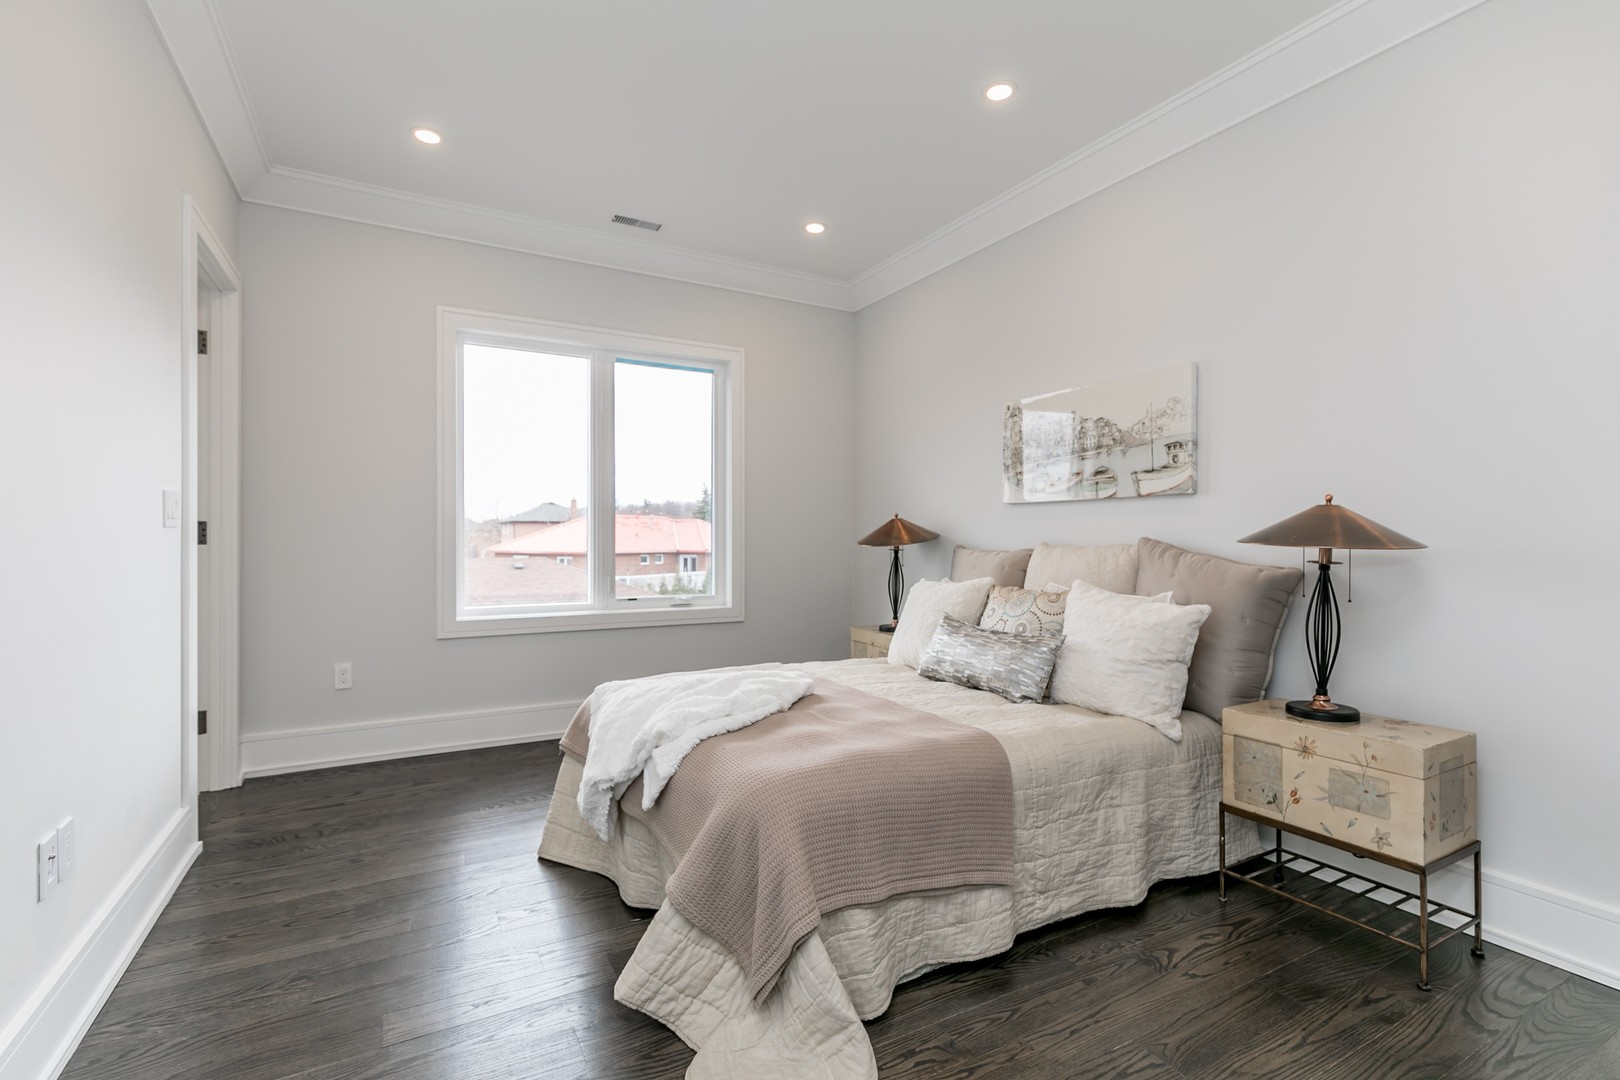 Second Bedroom View, 19 Ryder, Vaughan Home Staging